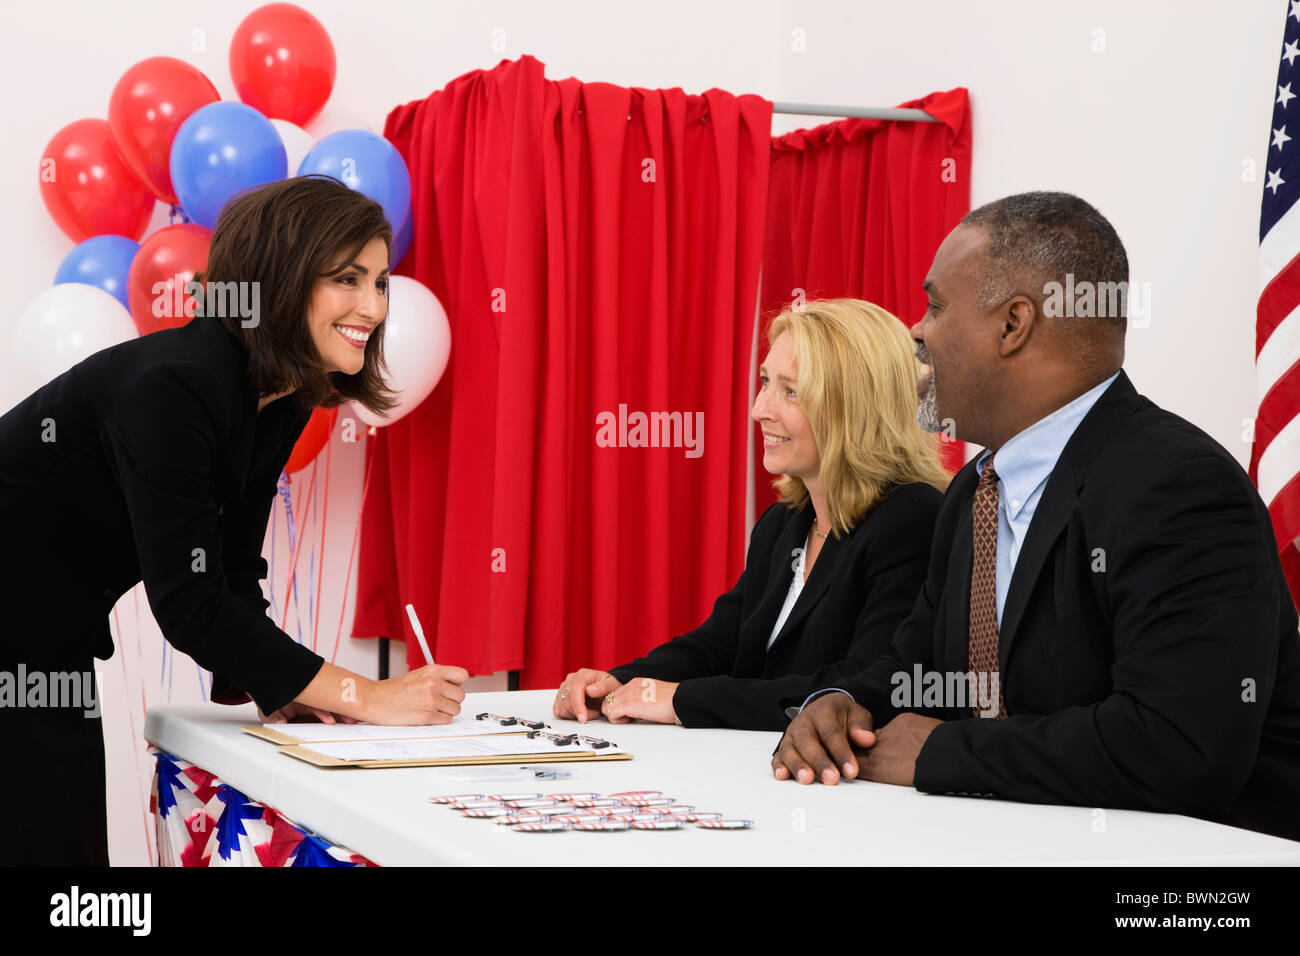 USA, Illinois, Metamora, People at polling place table, US flag, balloons and voting booth in background - Stock Image